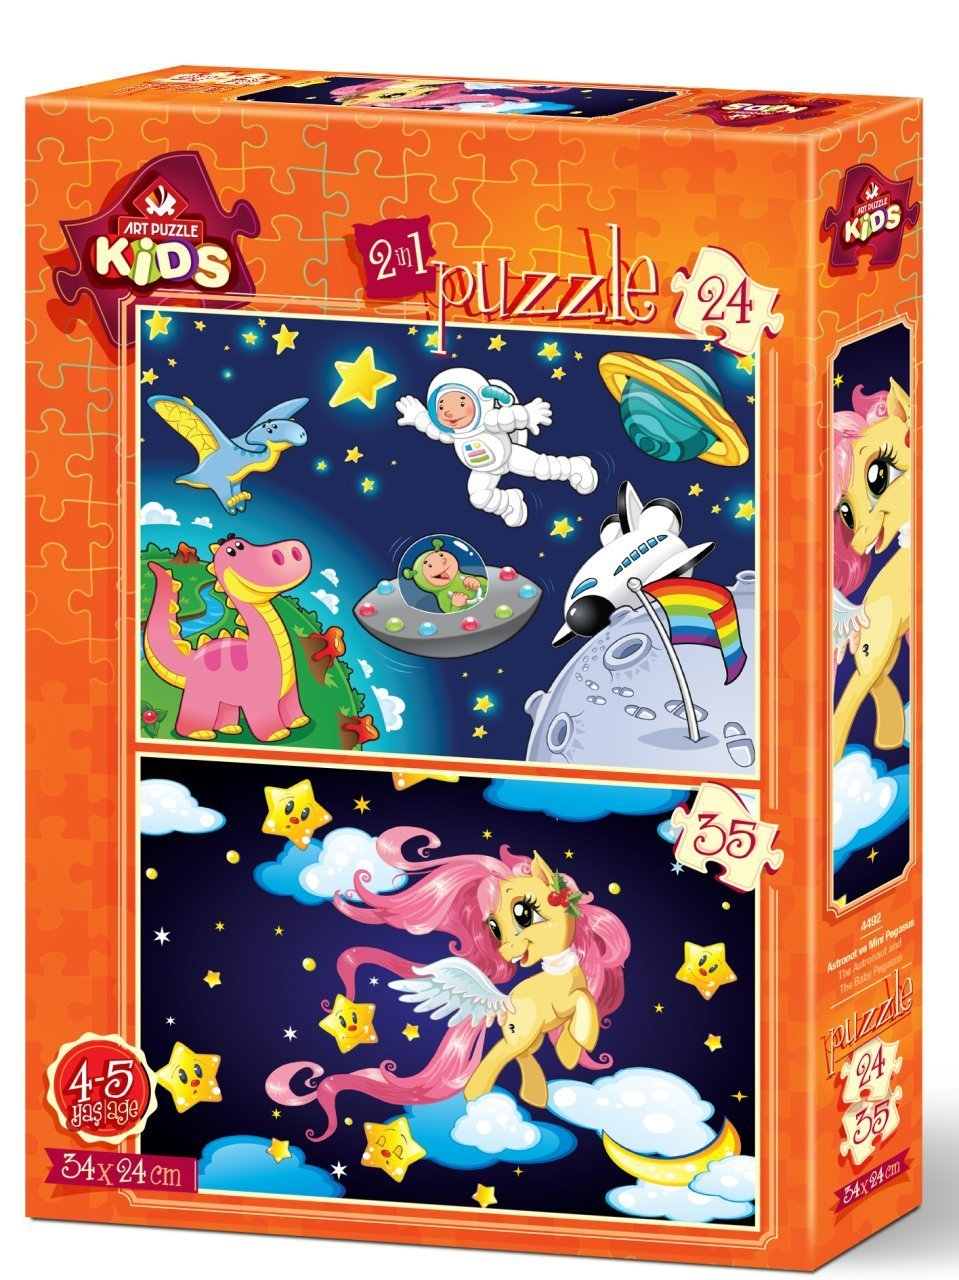 2-puzzles-the-astronaut-and-the-baby-pegasus